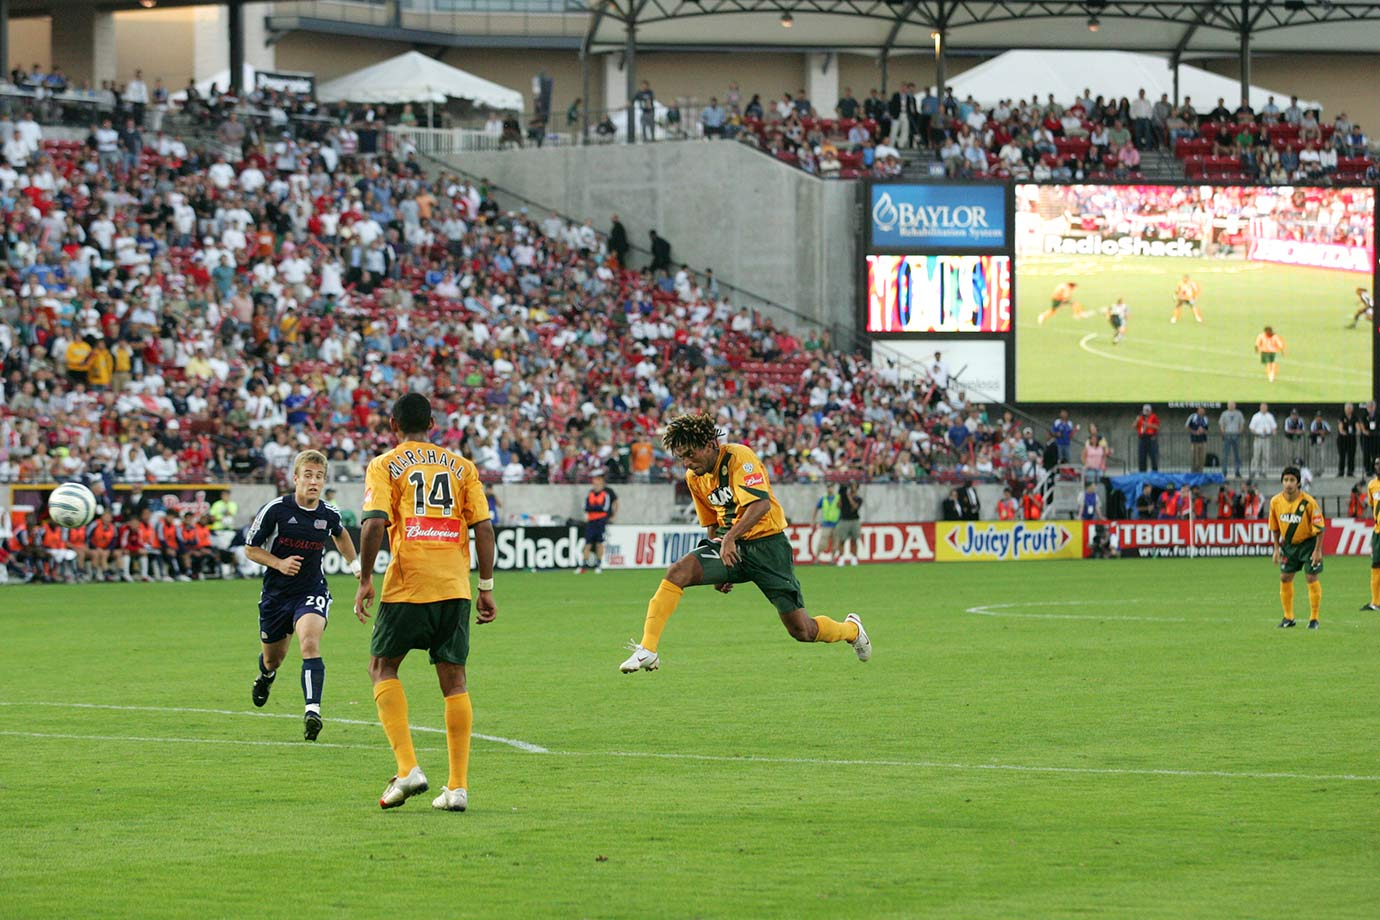 <p>2005 — Los Angeles Galaxy (beat New England Revolution 1-0 in extra time)</p>